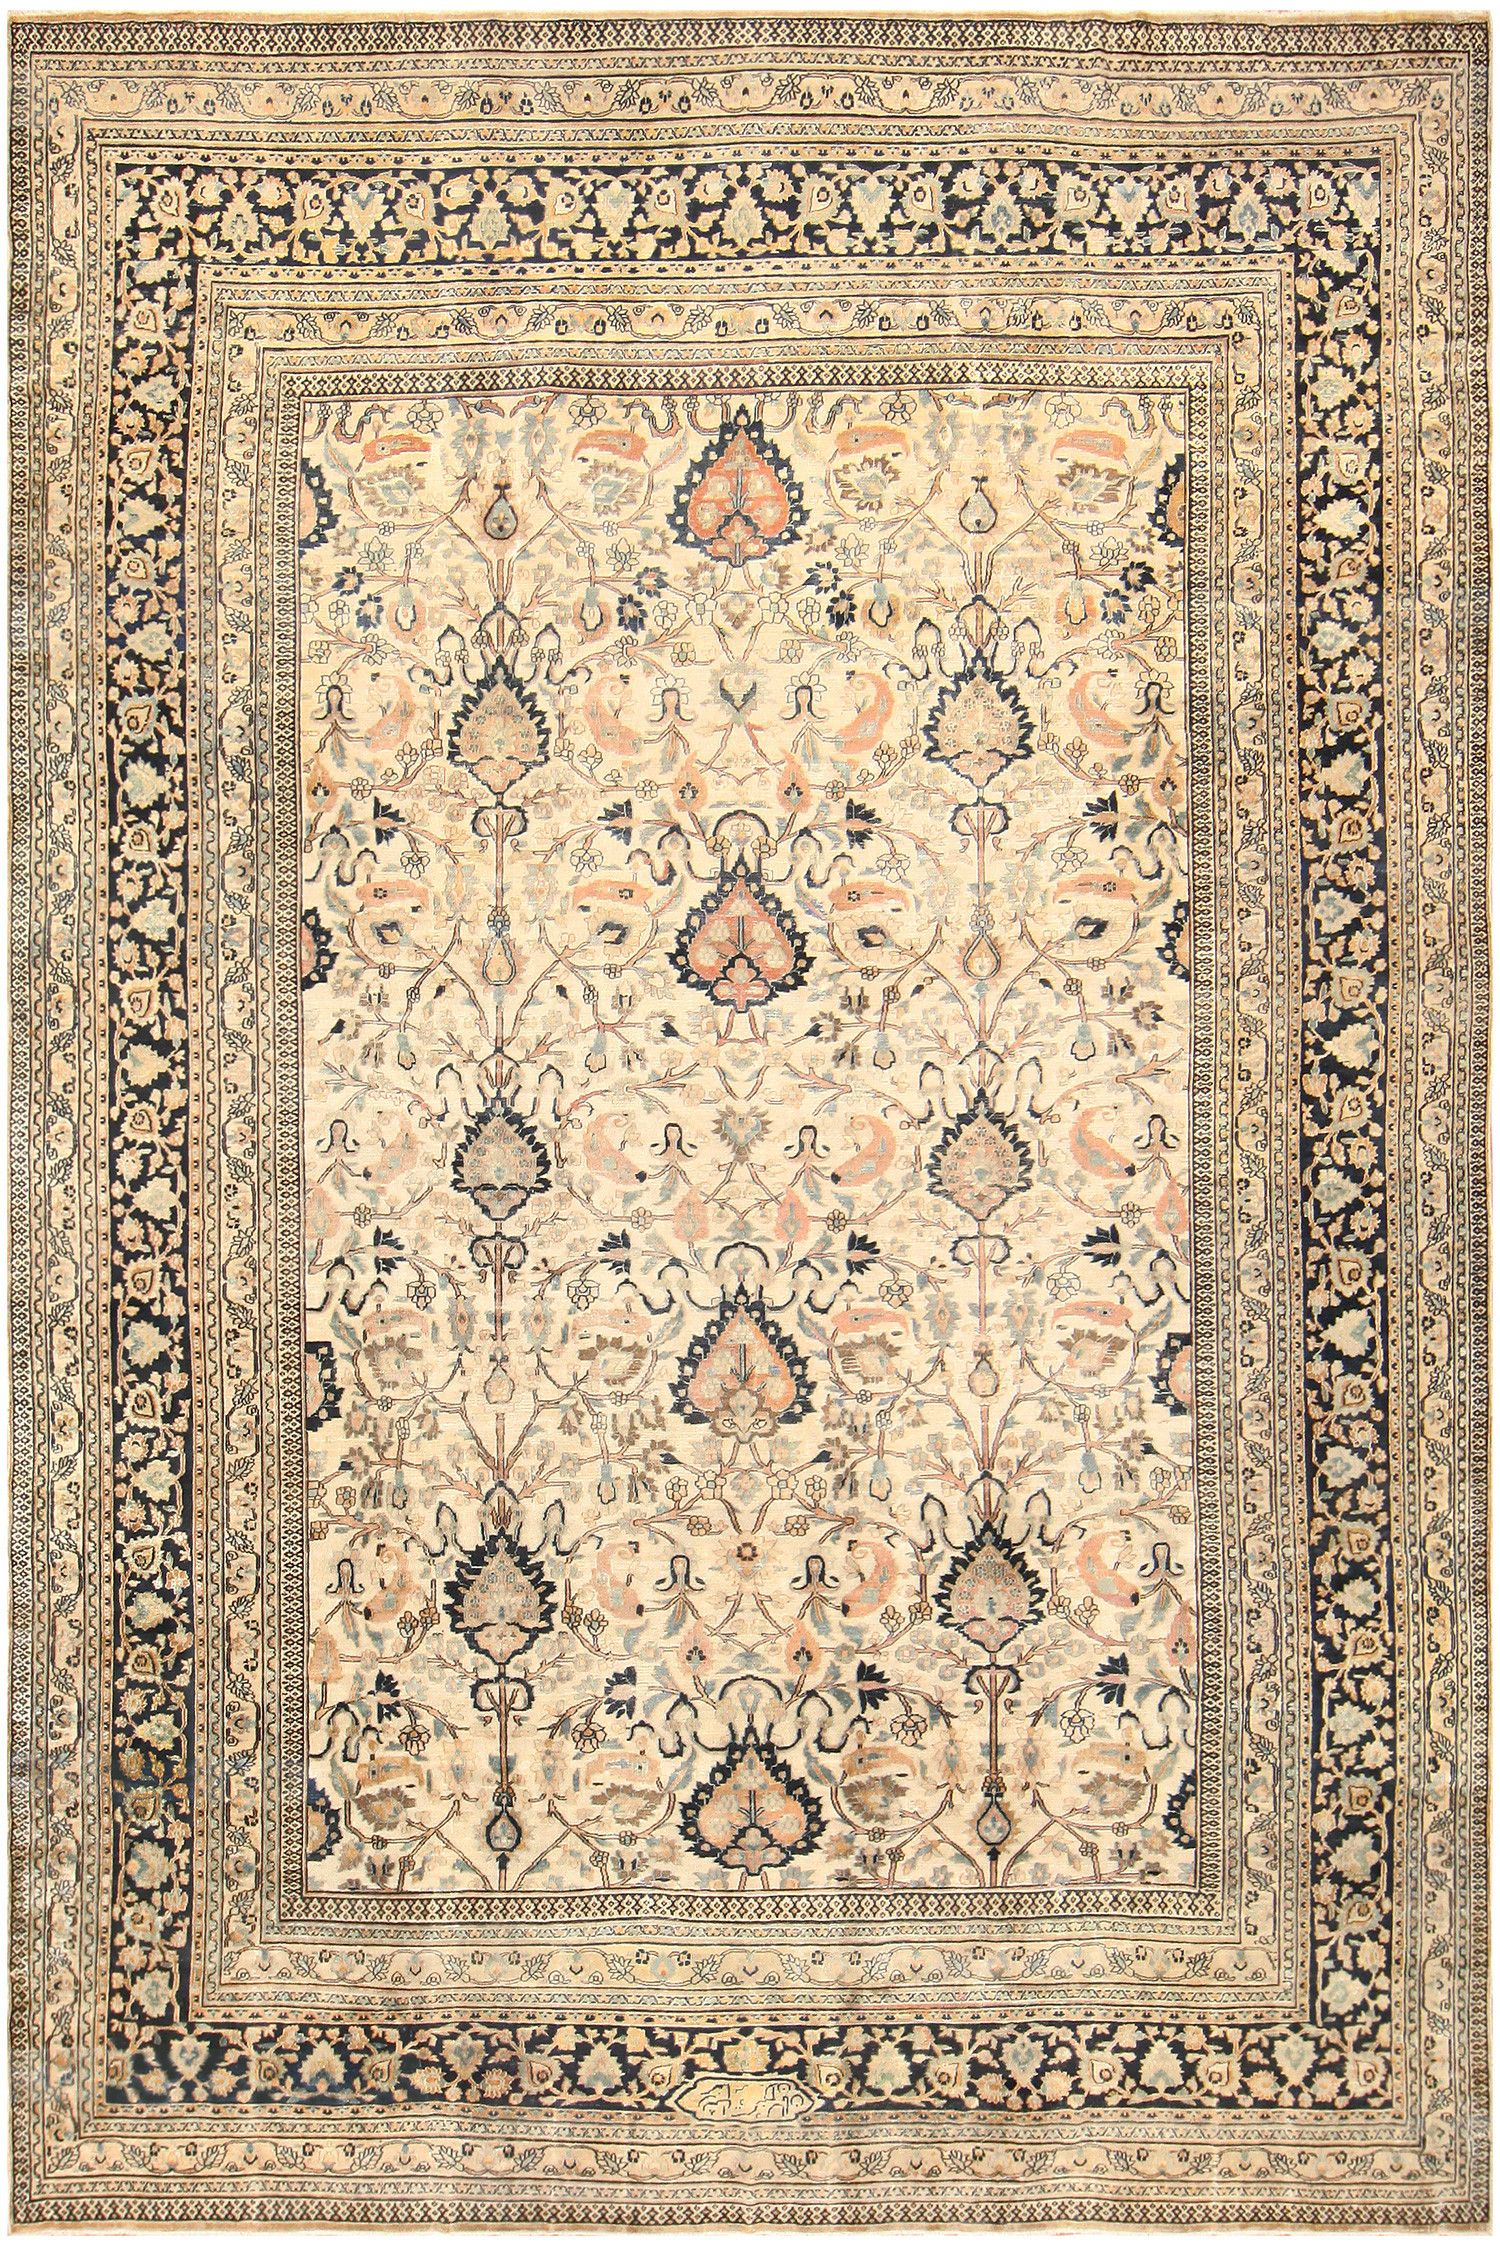 Large Antique Persian Khorassan Rug 50585 By Nazmiyal Persian Rug Designs Khorassan Rug Antique Persian Rug